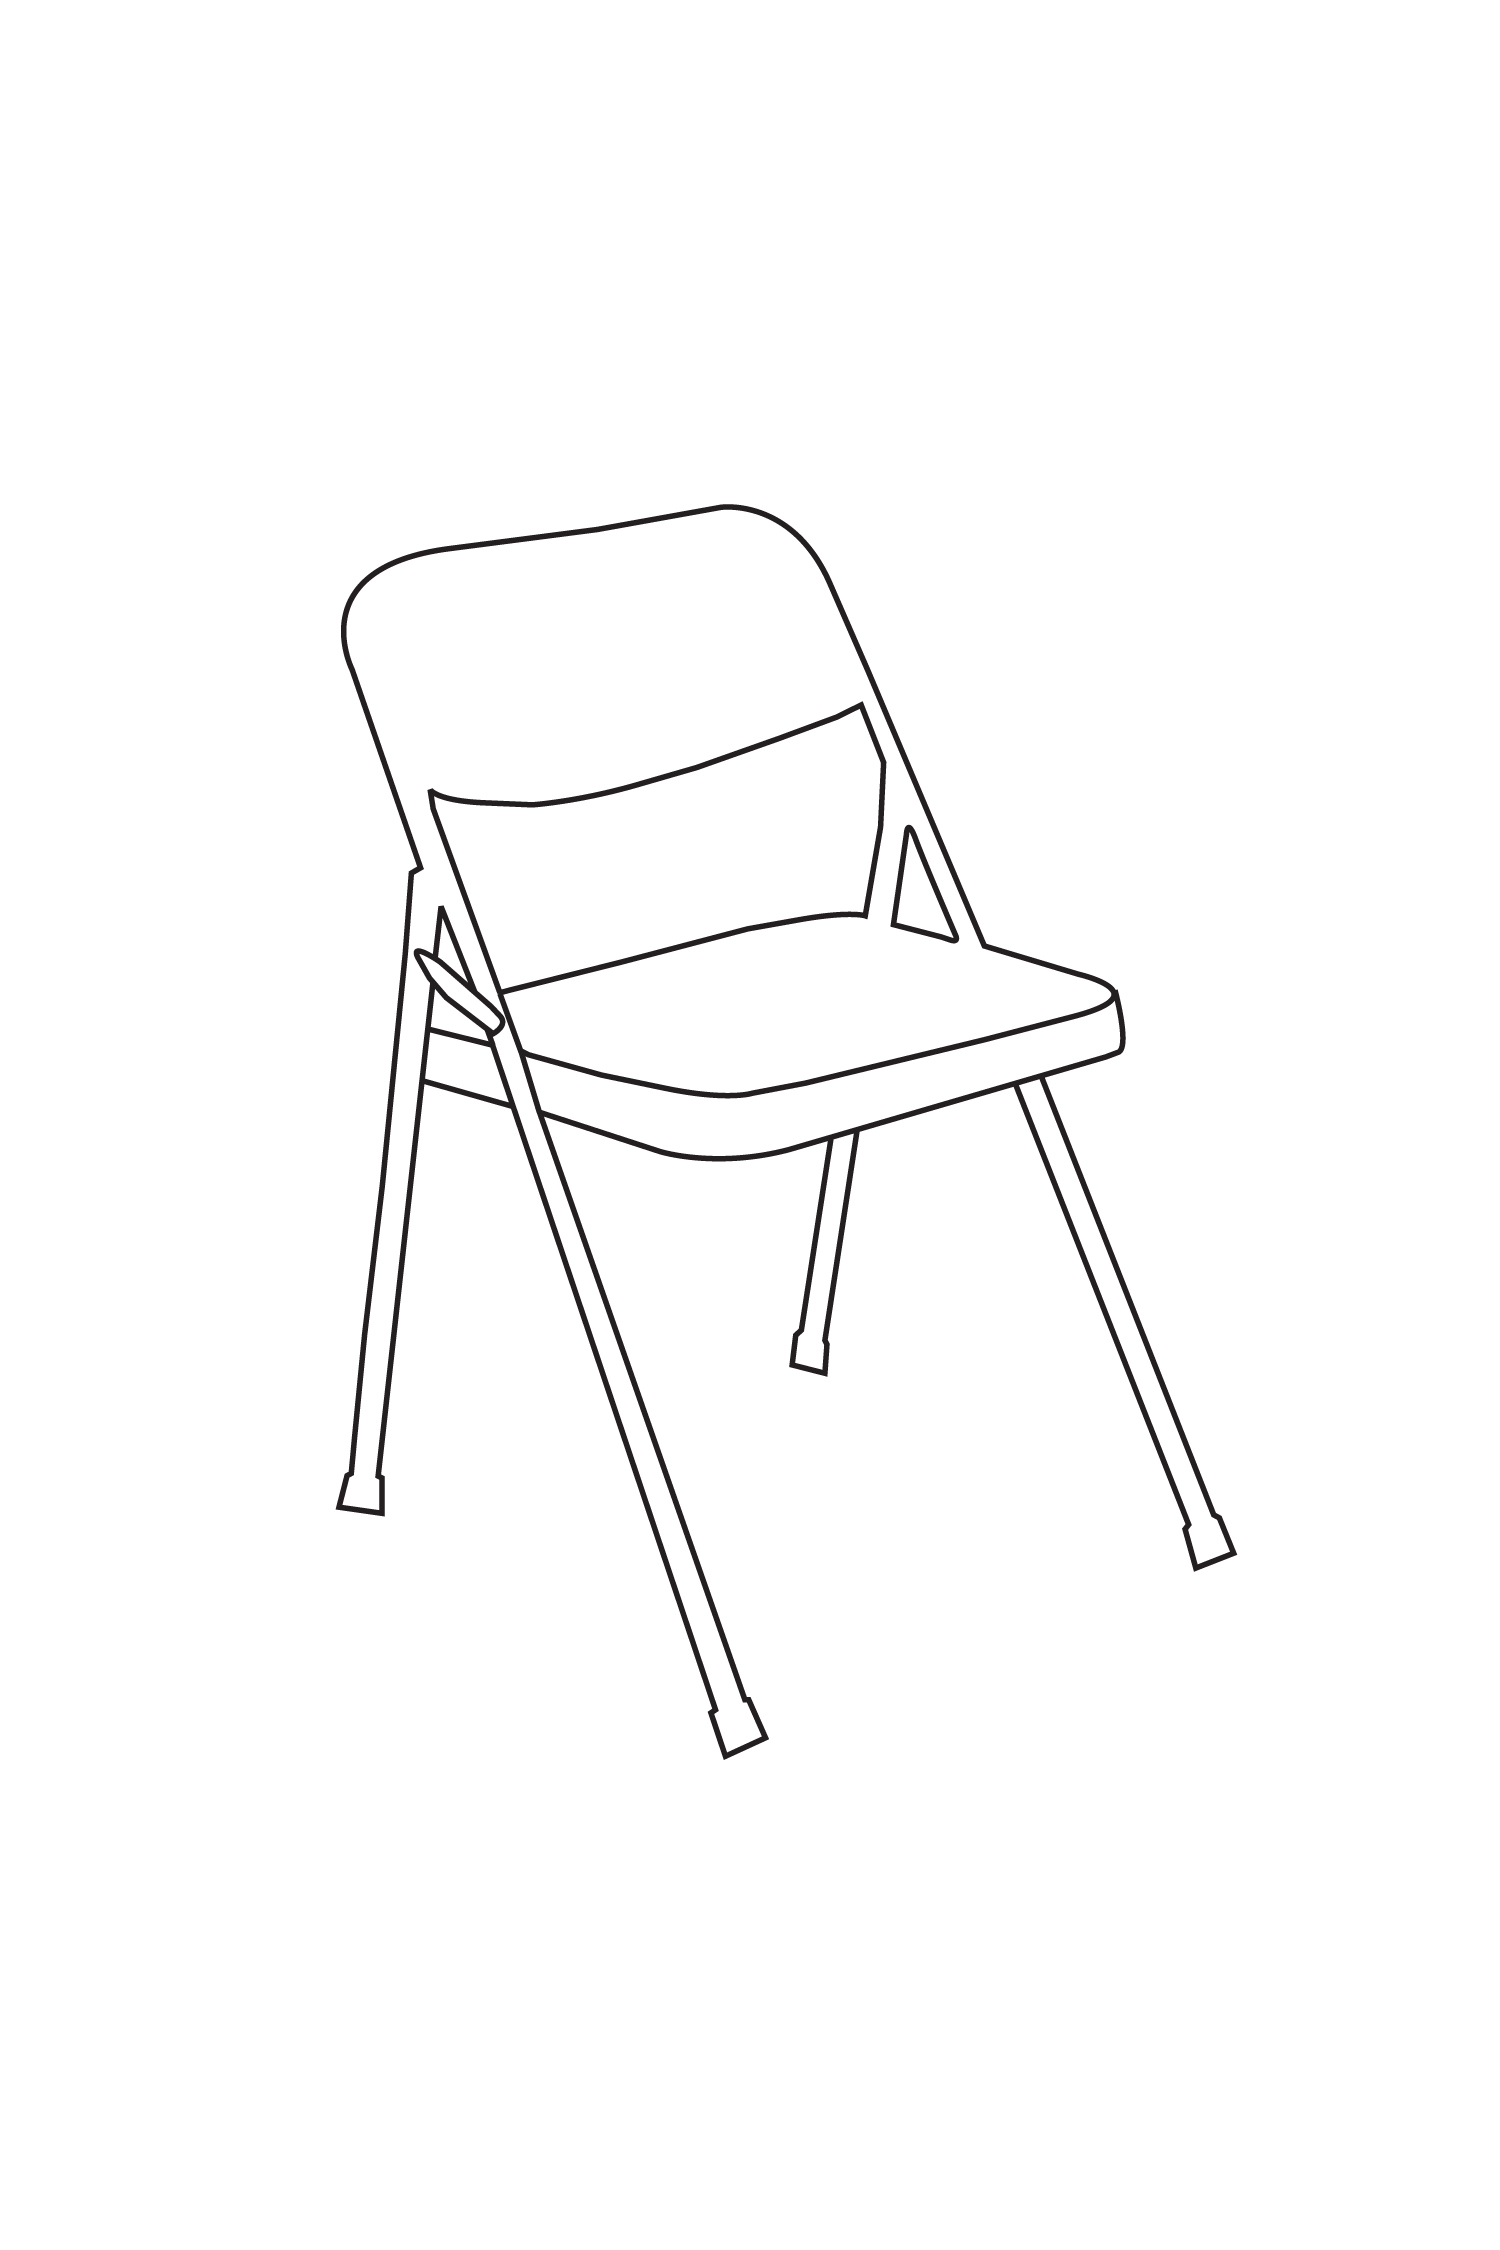 Untitled (folding chair) 2013